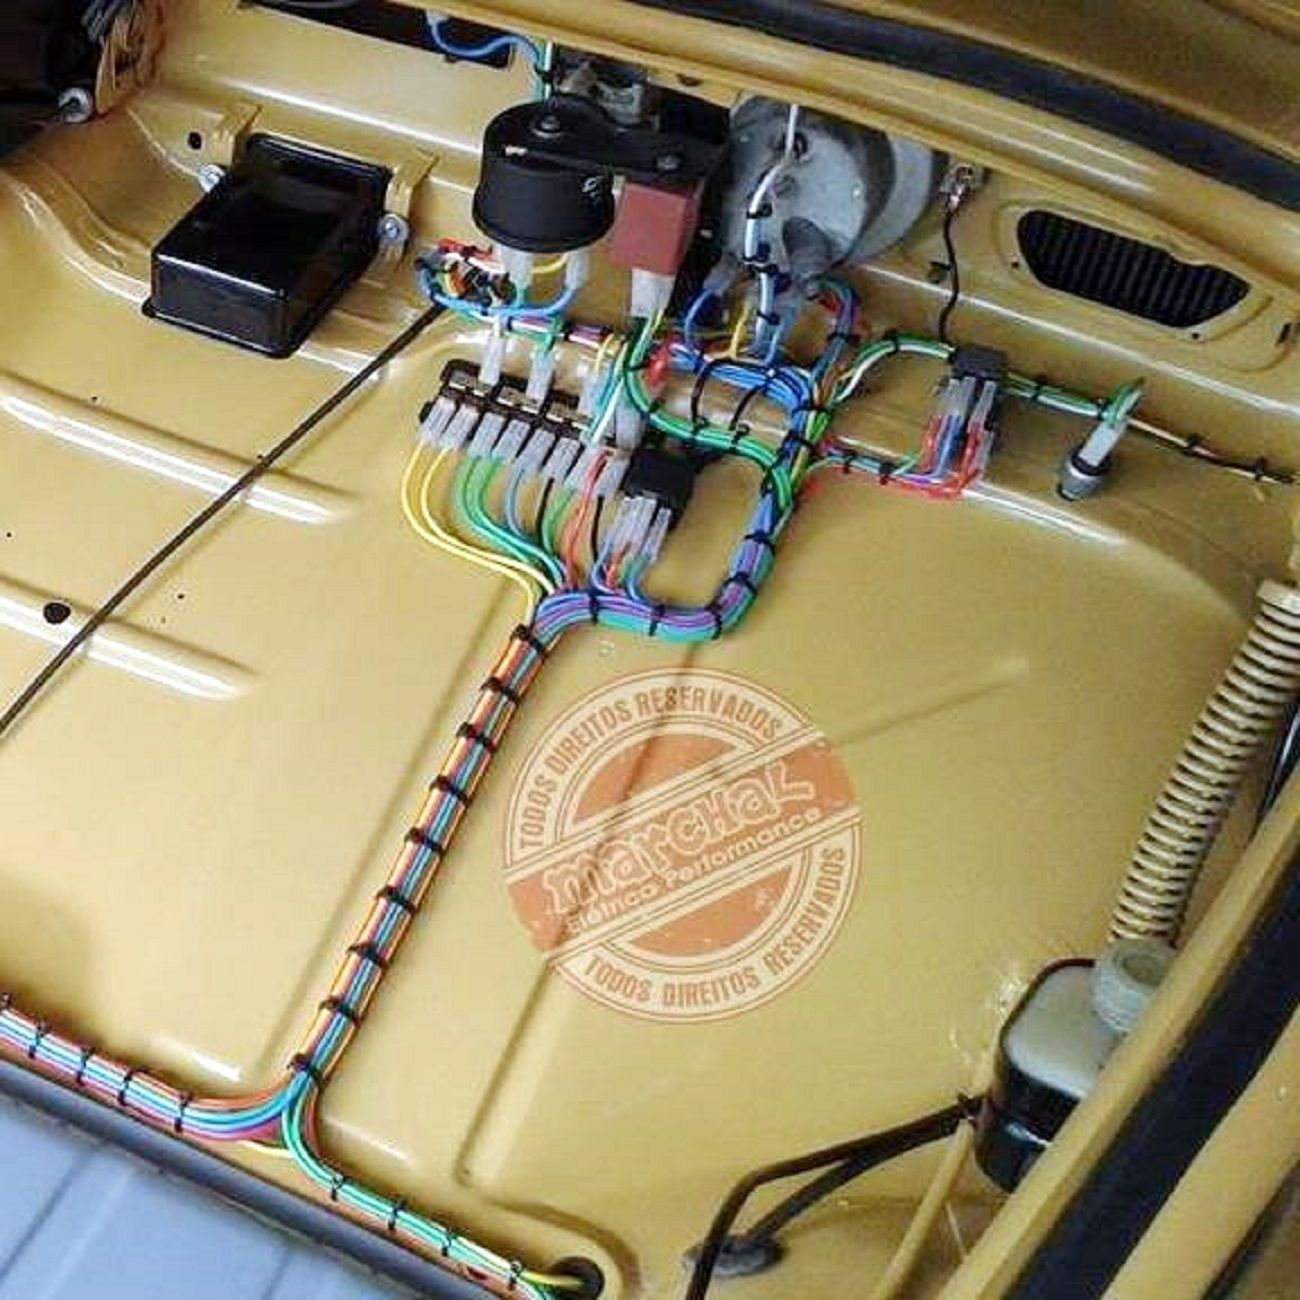 Wiring Diagrams 1964 Vw Beetle Wiring Diagram Air Conditioning Wiring